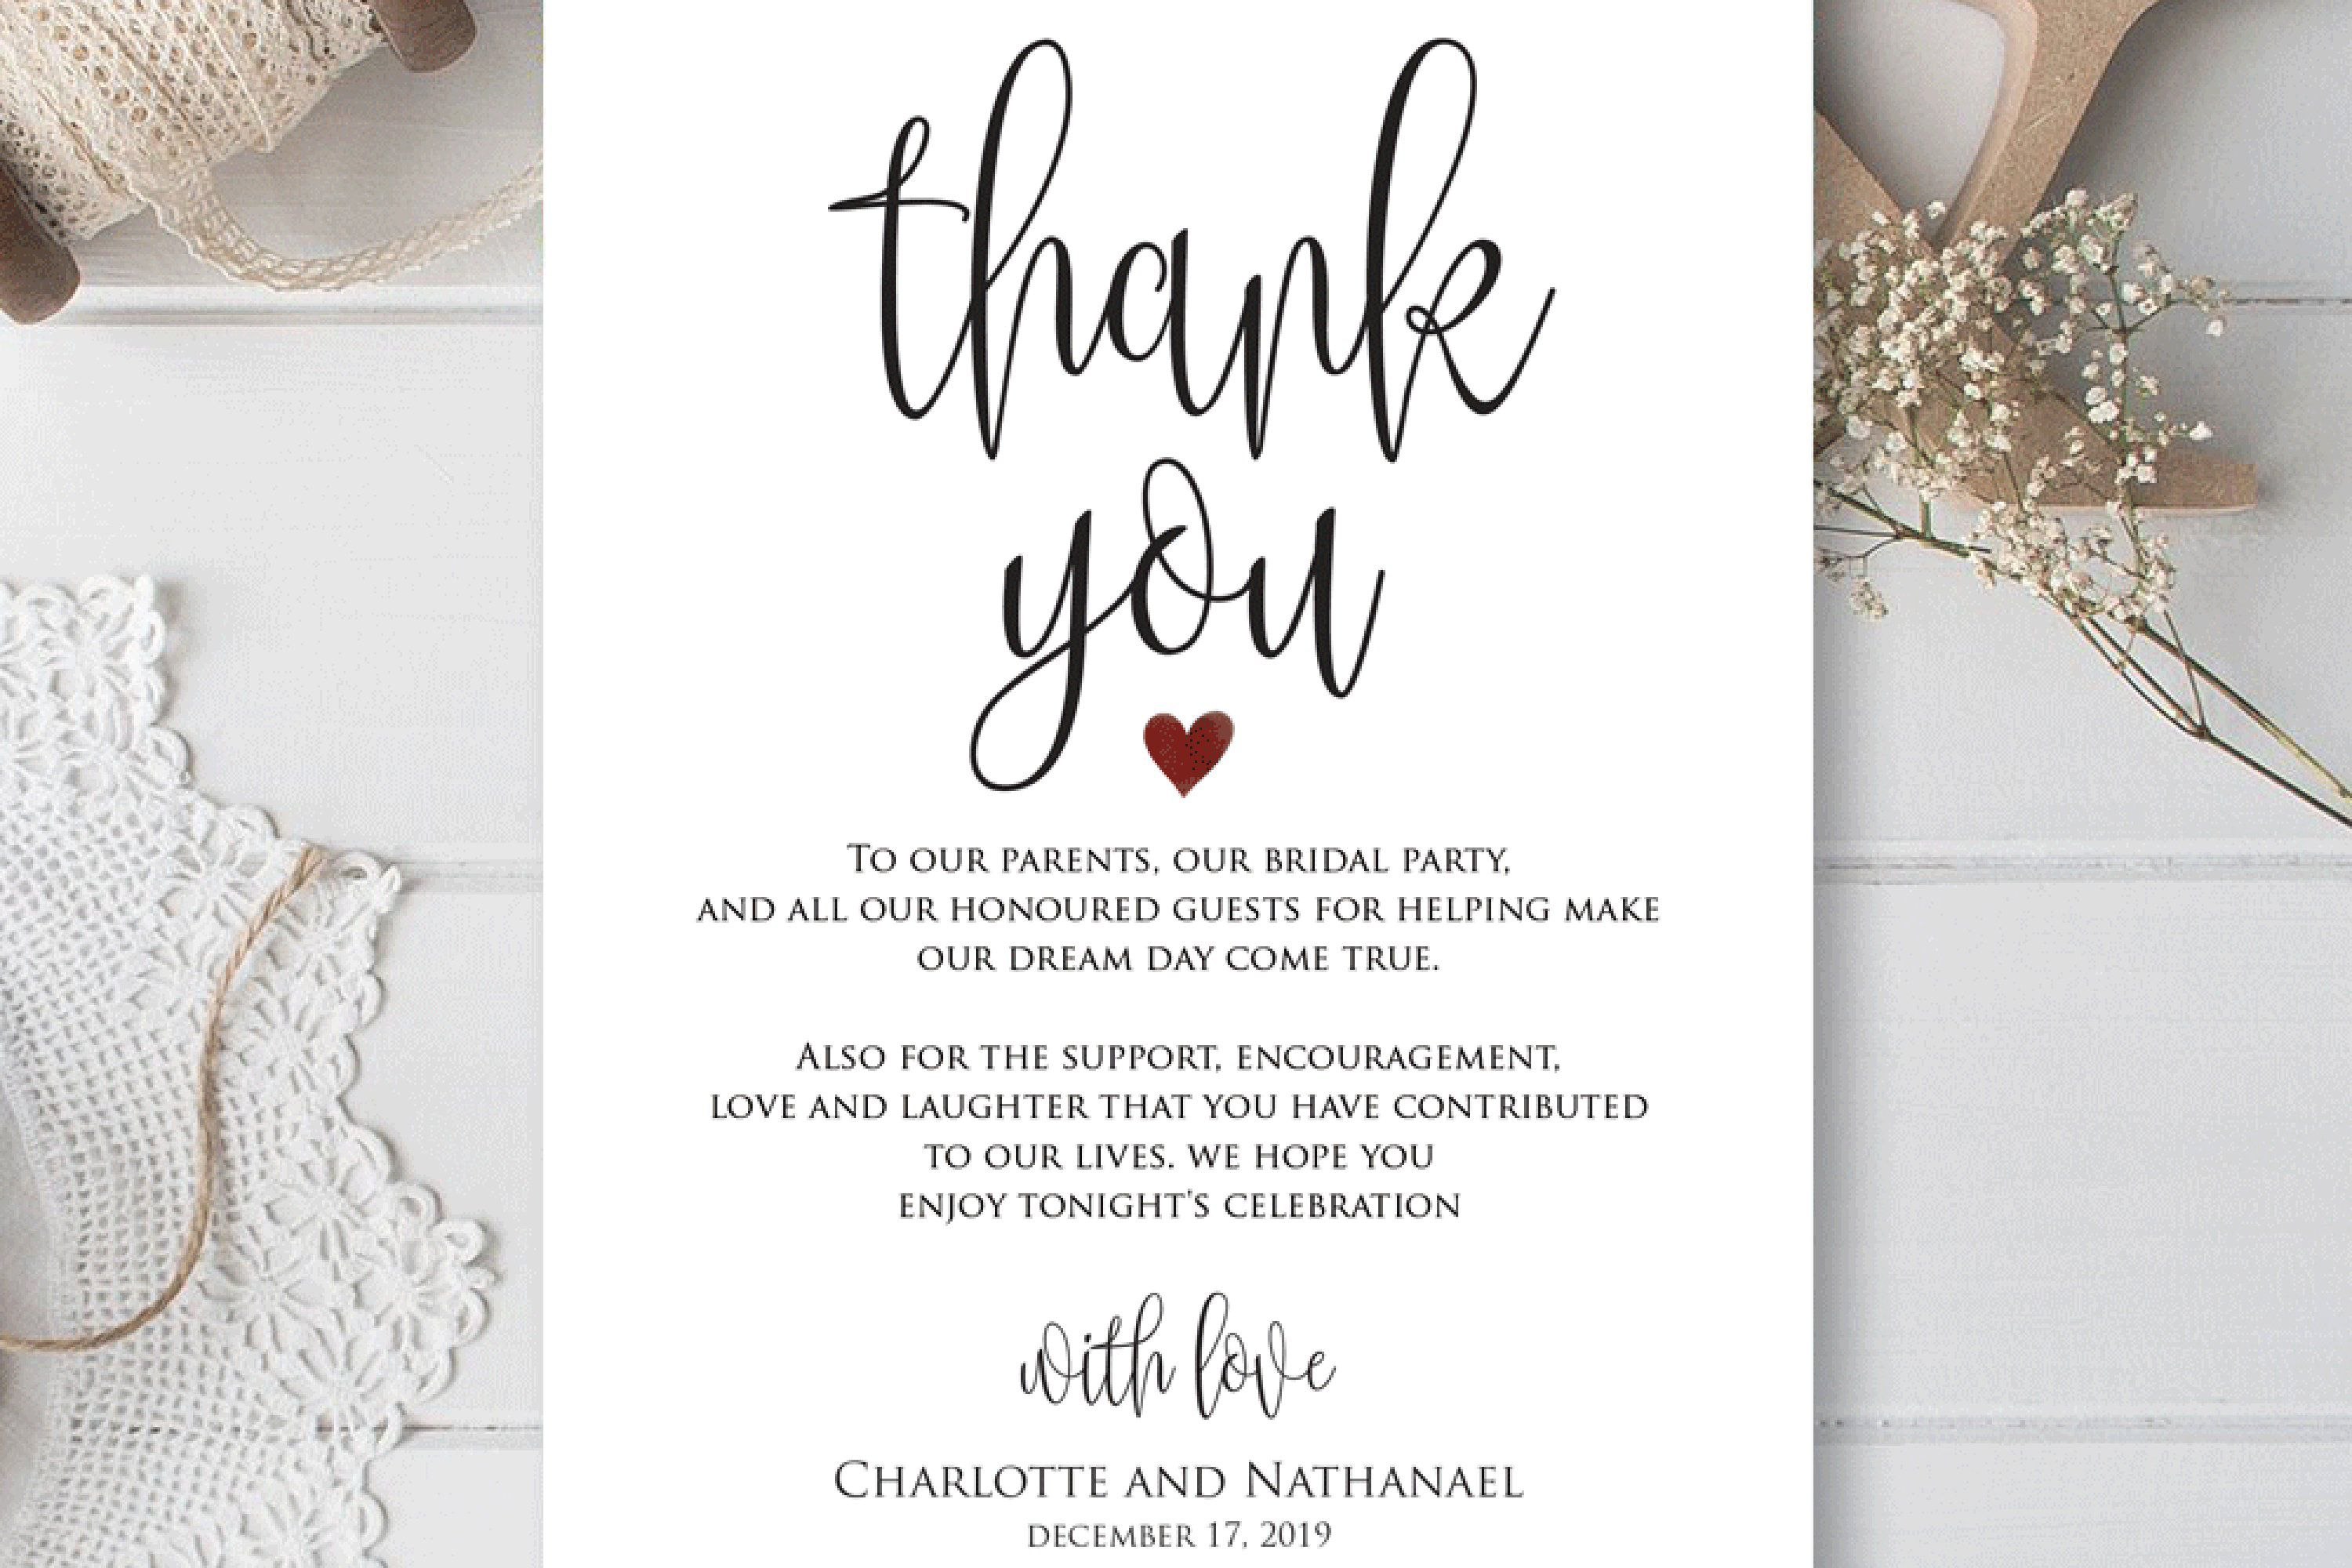 000 Simple Wedding Thank You Card Templates. Example  Template Etsy Word PublisherFull